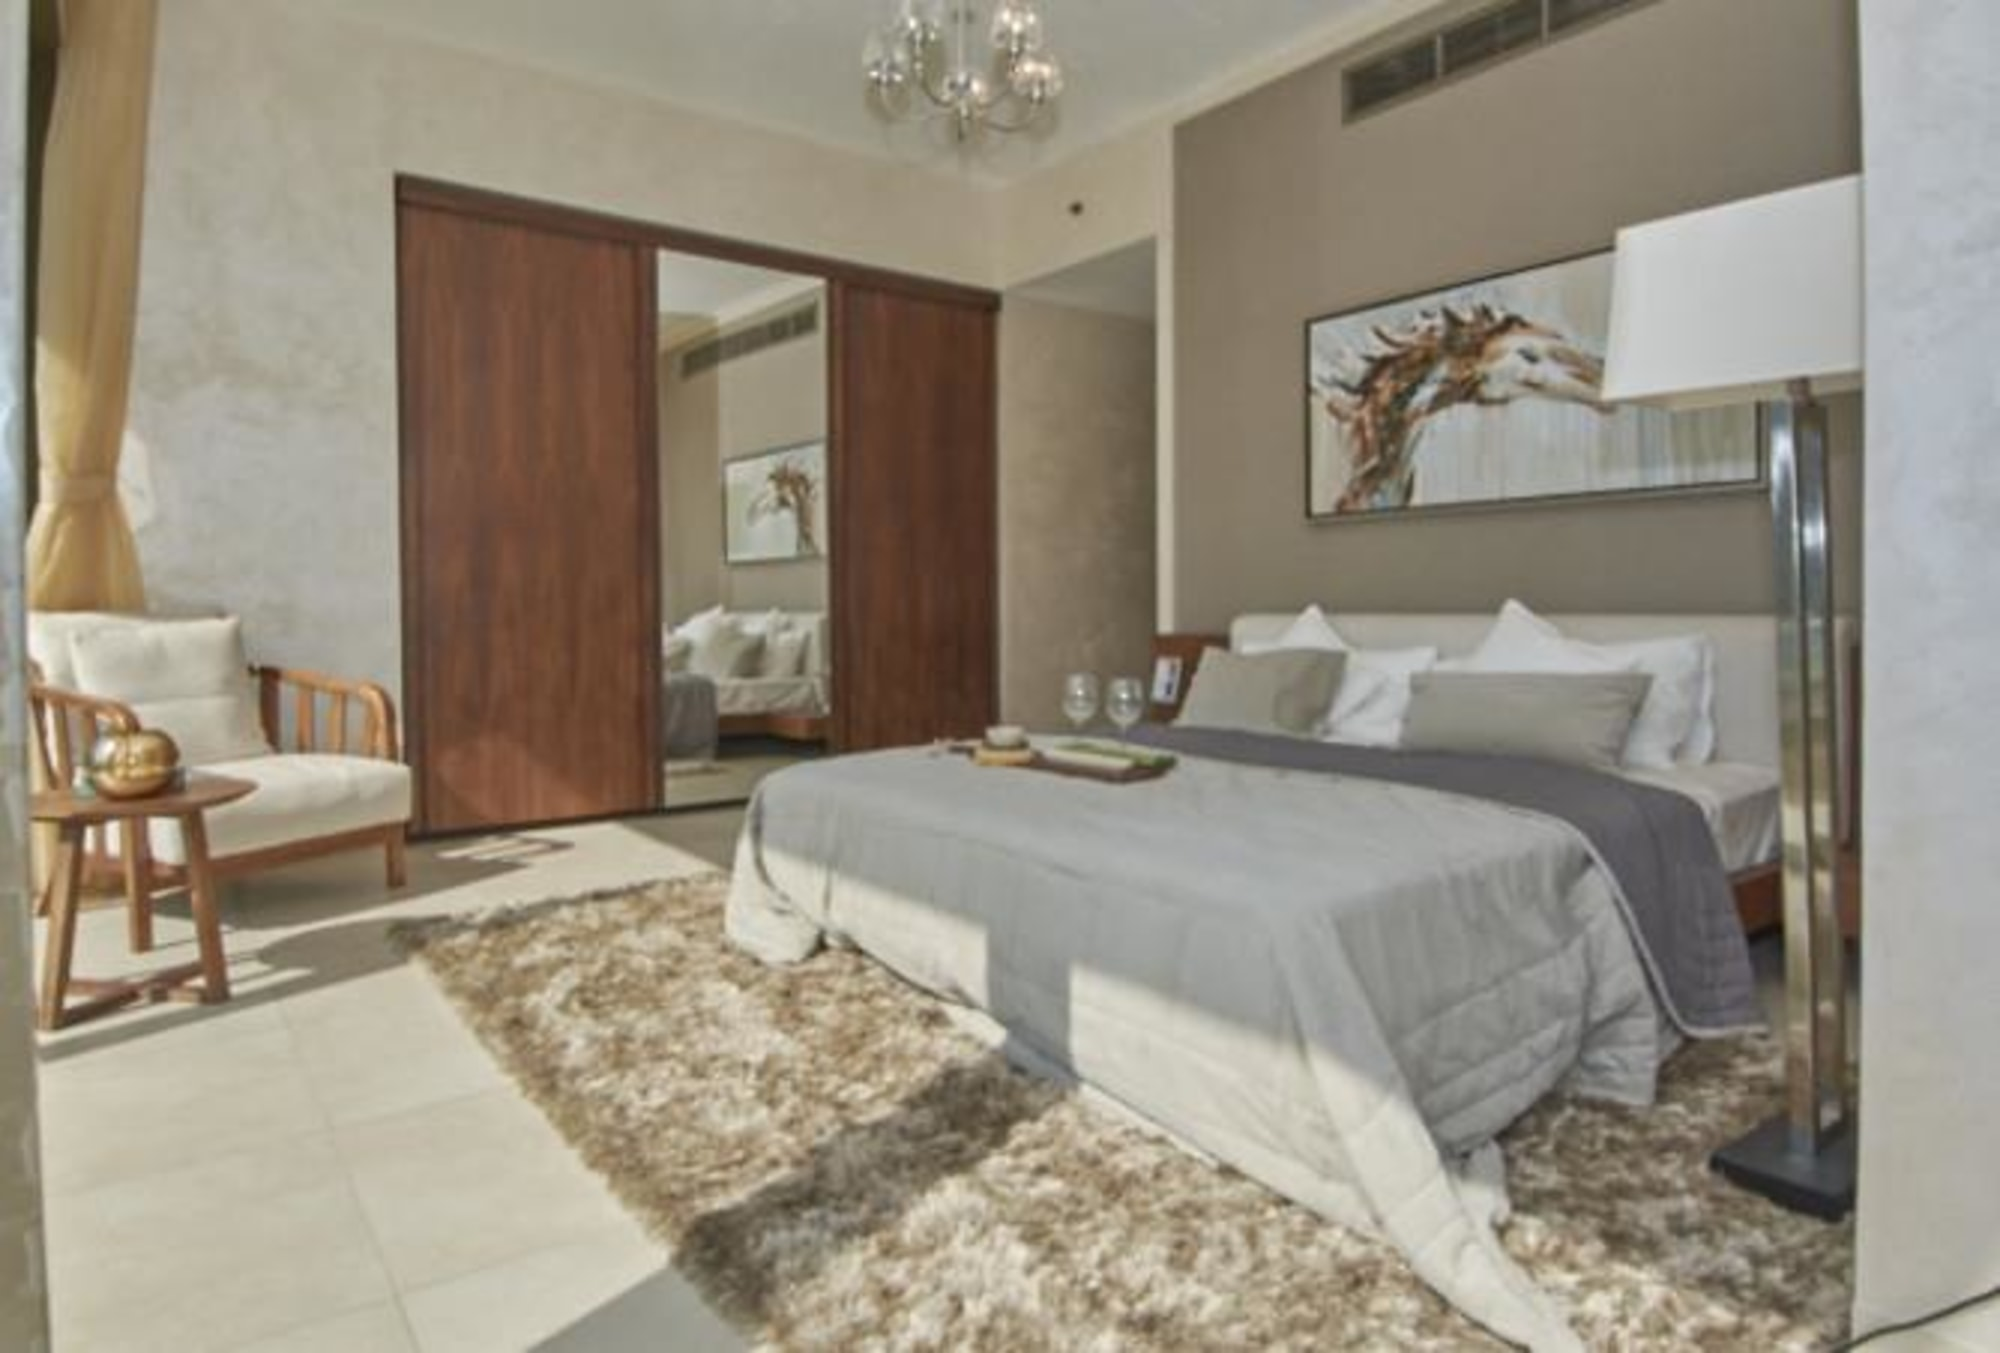 Priced to sell: luxury 2 Bedroom apartment